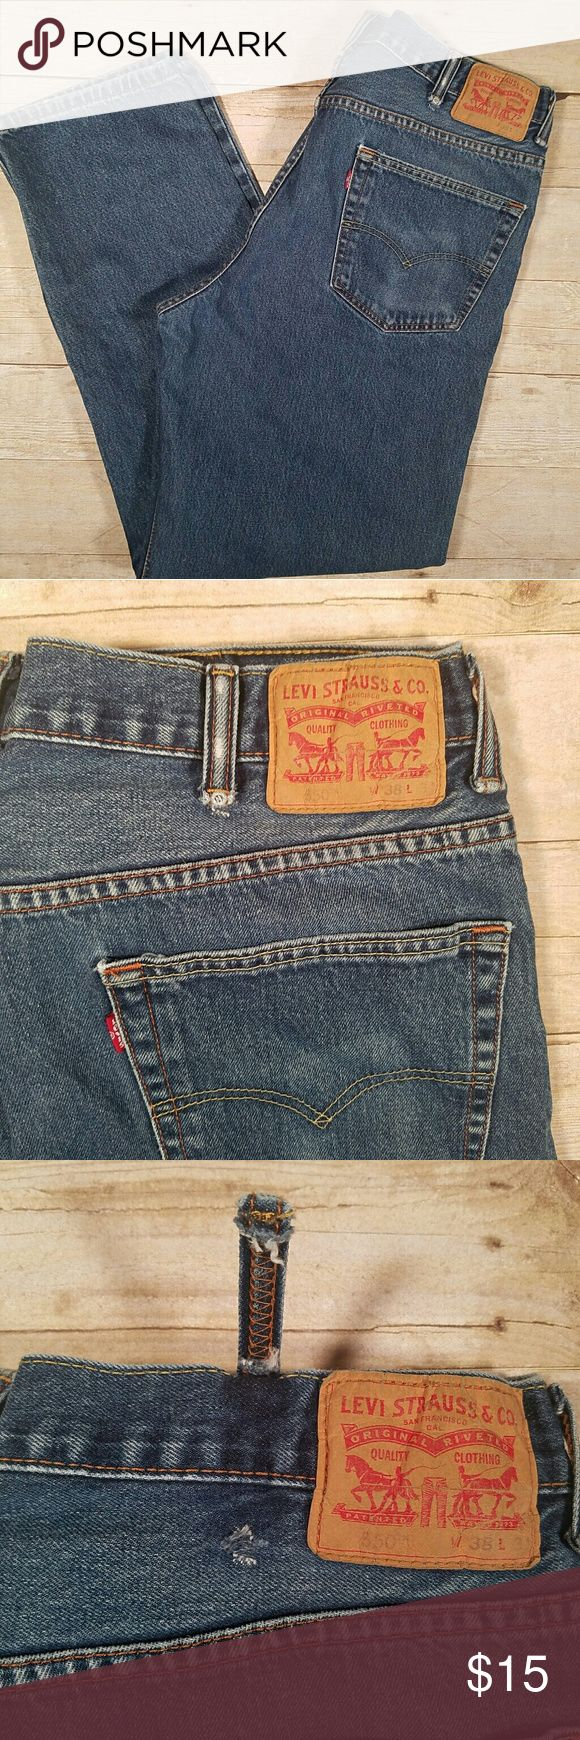 Men's Levi's relaxed fit 550 38 x 34 medium wash Men's Levi's, relaxed fit 550 in size 38 x 34. Be there a medium wash. These are in great shape, with only slight fading around the pockets. Grab them cheap because one belt loop is popped off, see photos! Levi's Jeans Relaxed